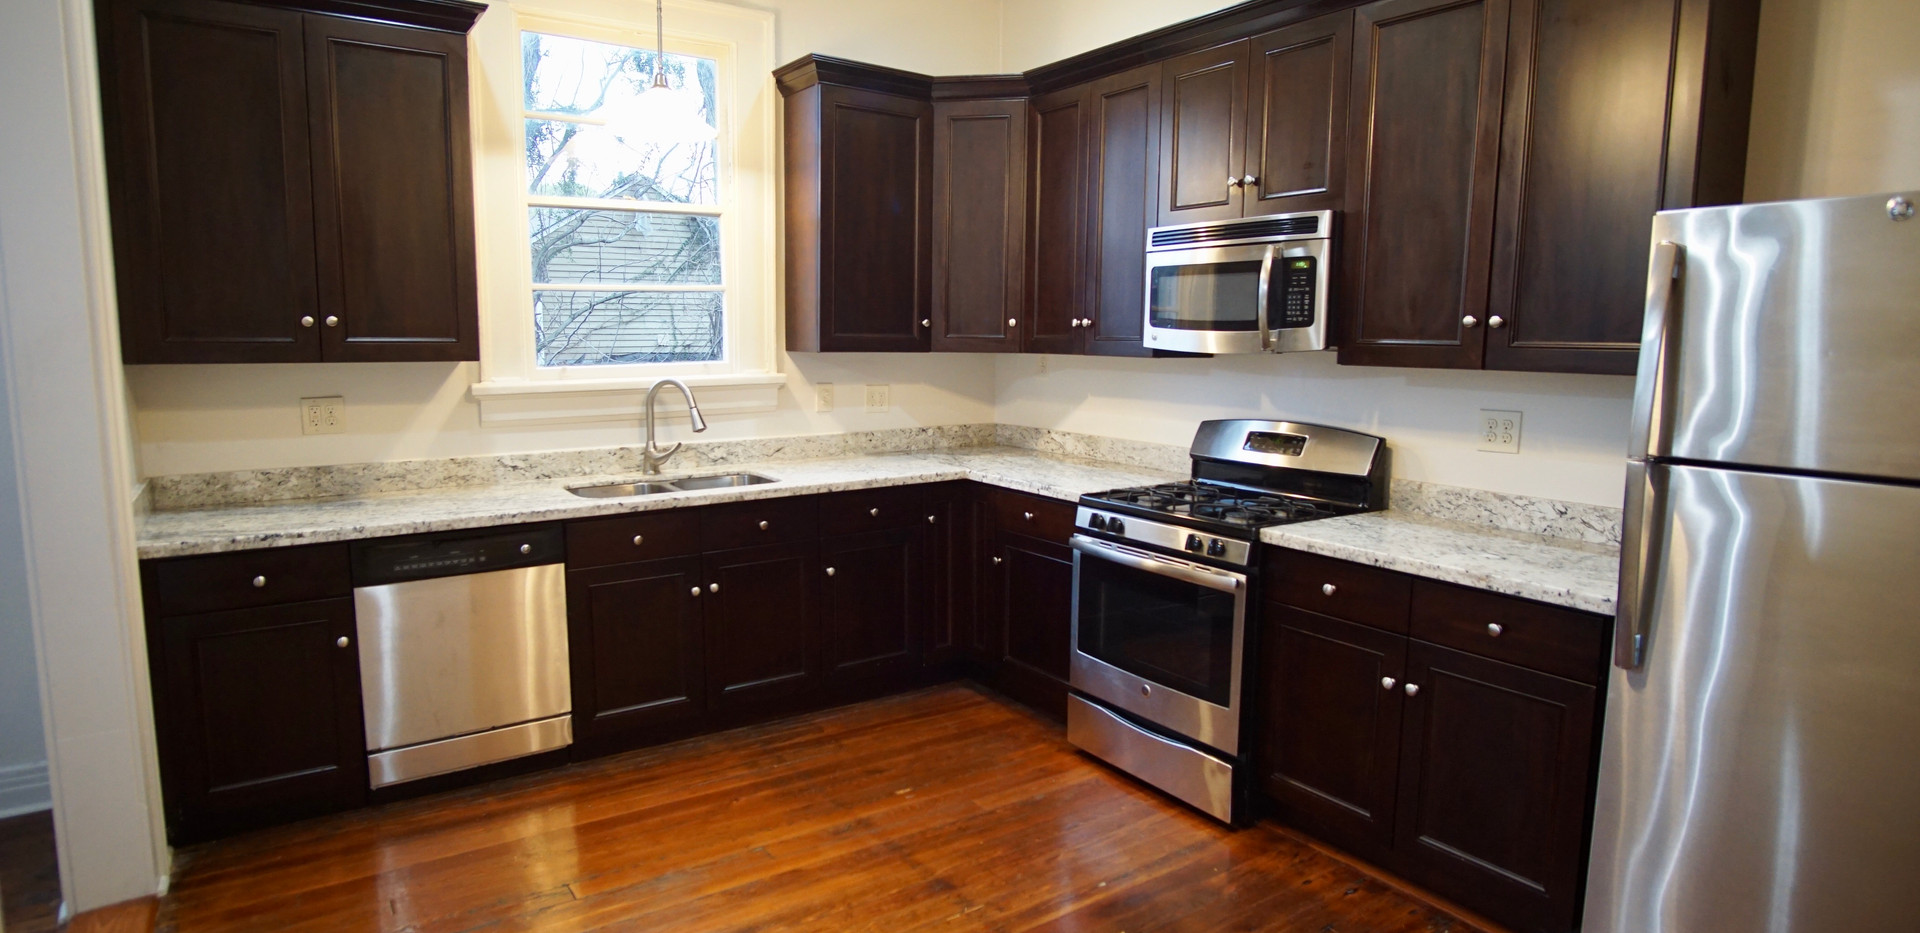 stainless stell appliances and granite countertops